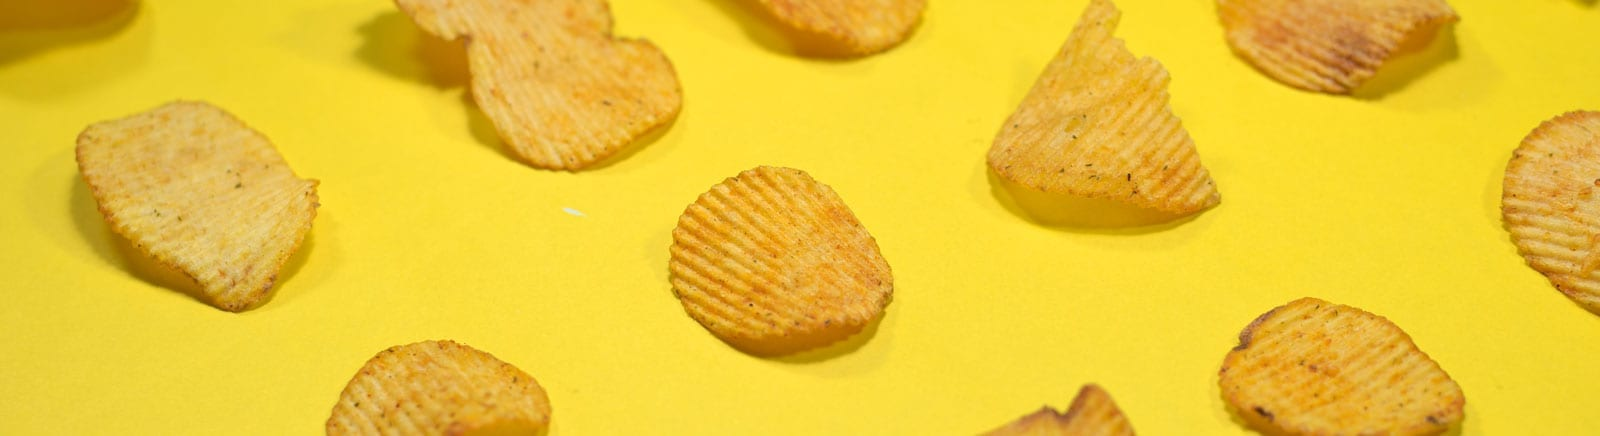 Lawsuit-Alleges-Diacetyl-in-Frito-Lay-Chips-Frito-Lay-Workers-at-Risk-